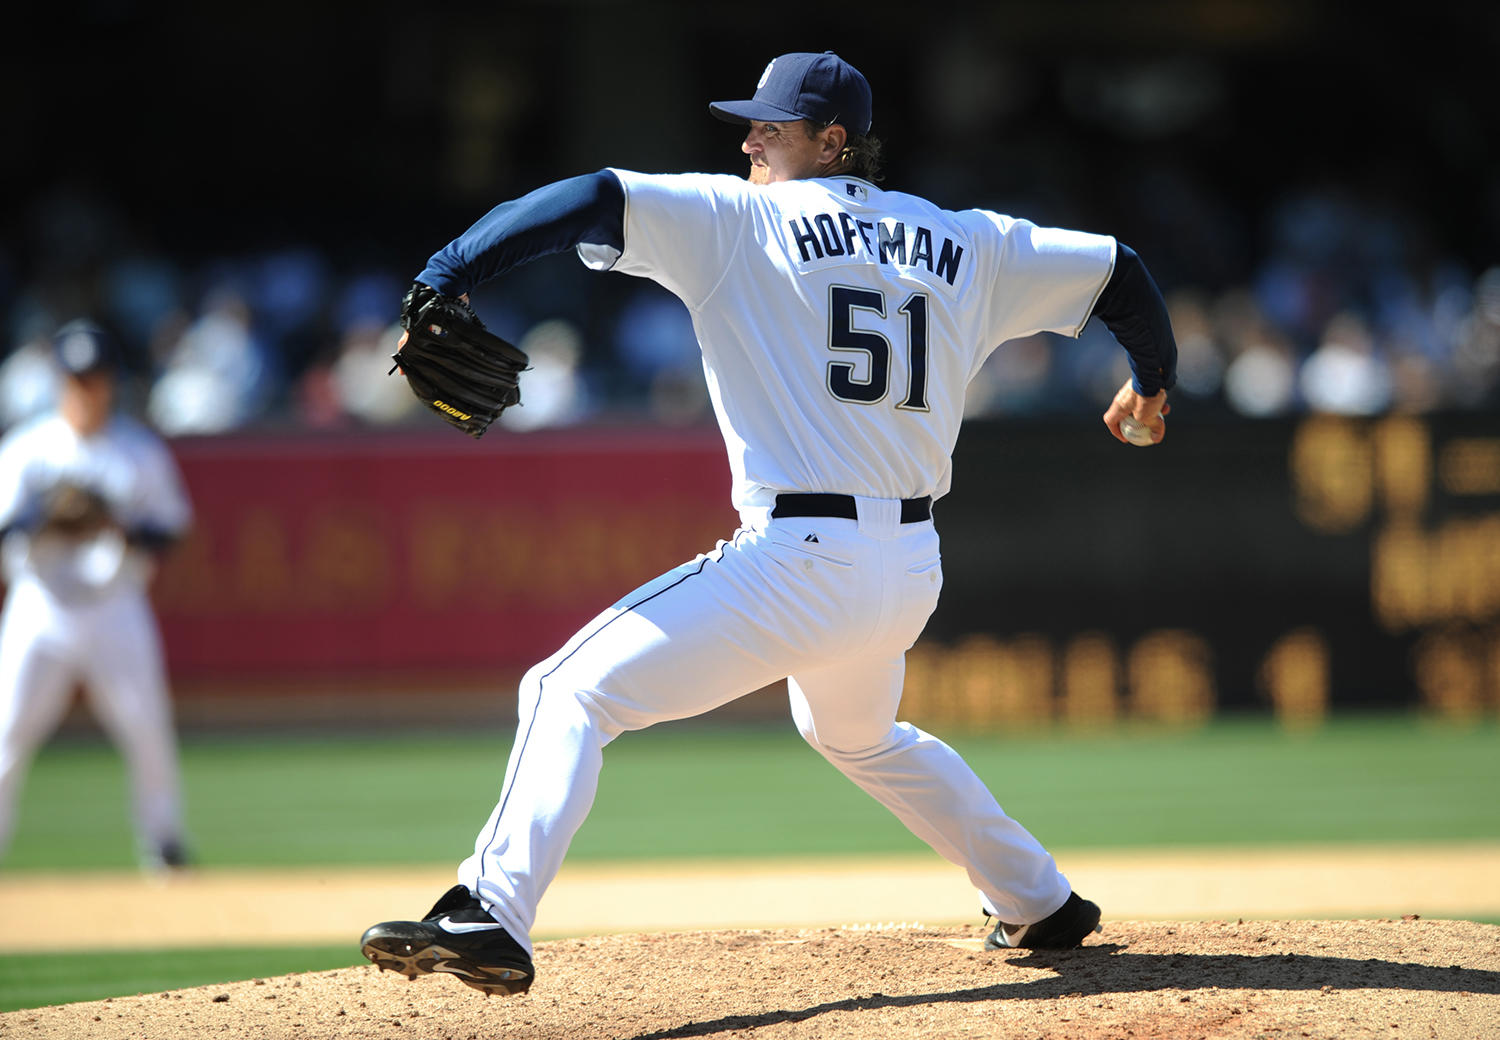 Trevor Hoffman's save percentage of 88.8 ranks second among all pitchers with at least 400 saves. (National Baseball Hall of Fame and Museum)